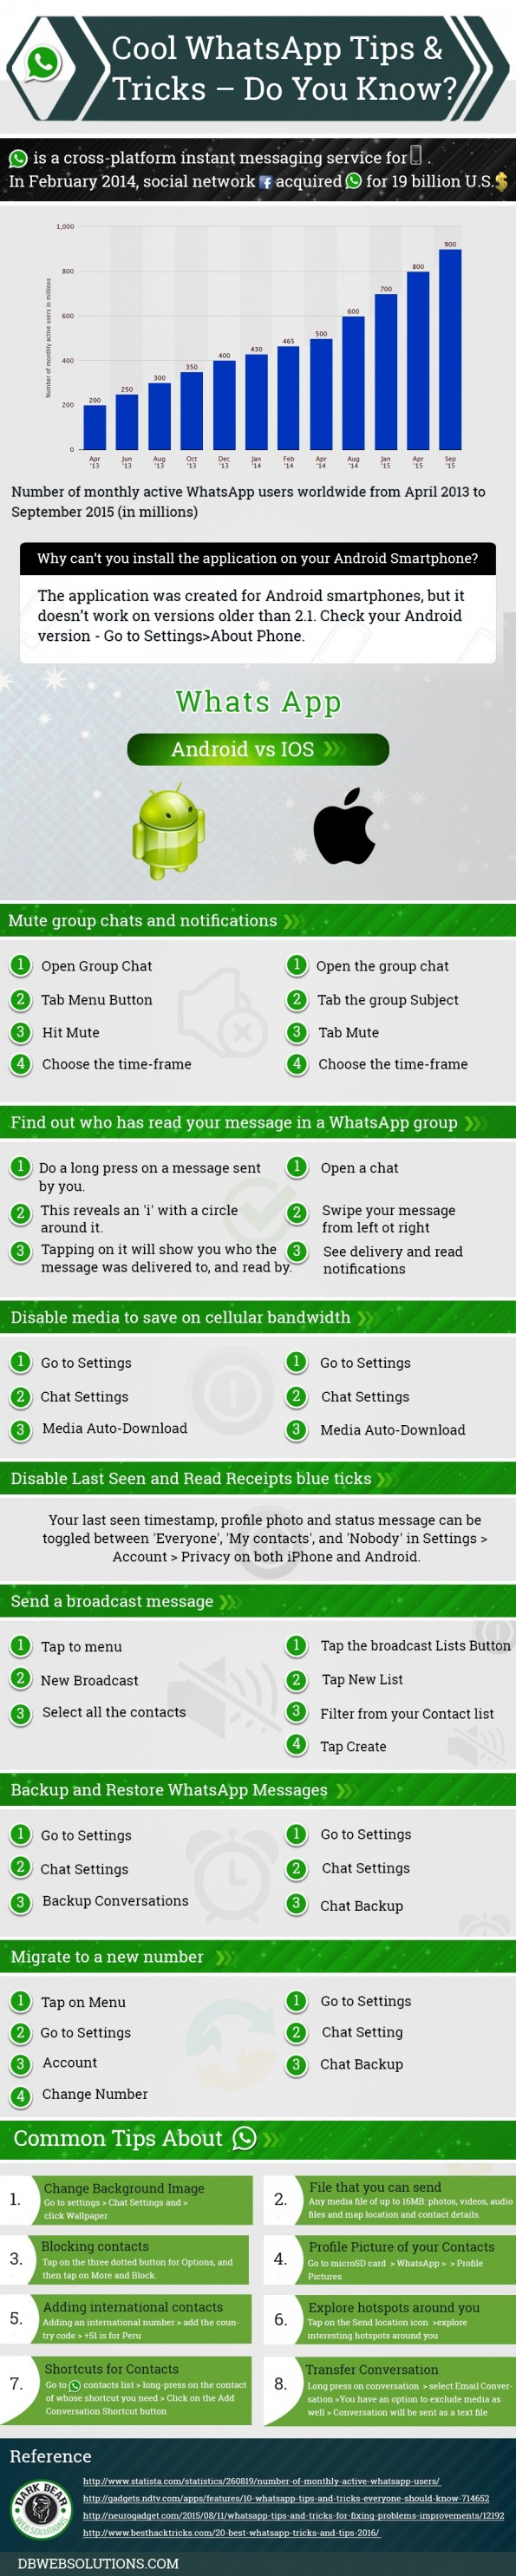 7 handige whatsapp tips en tricks Infographic